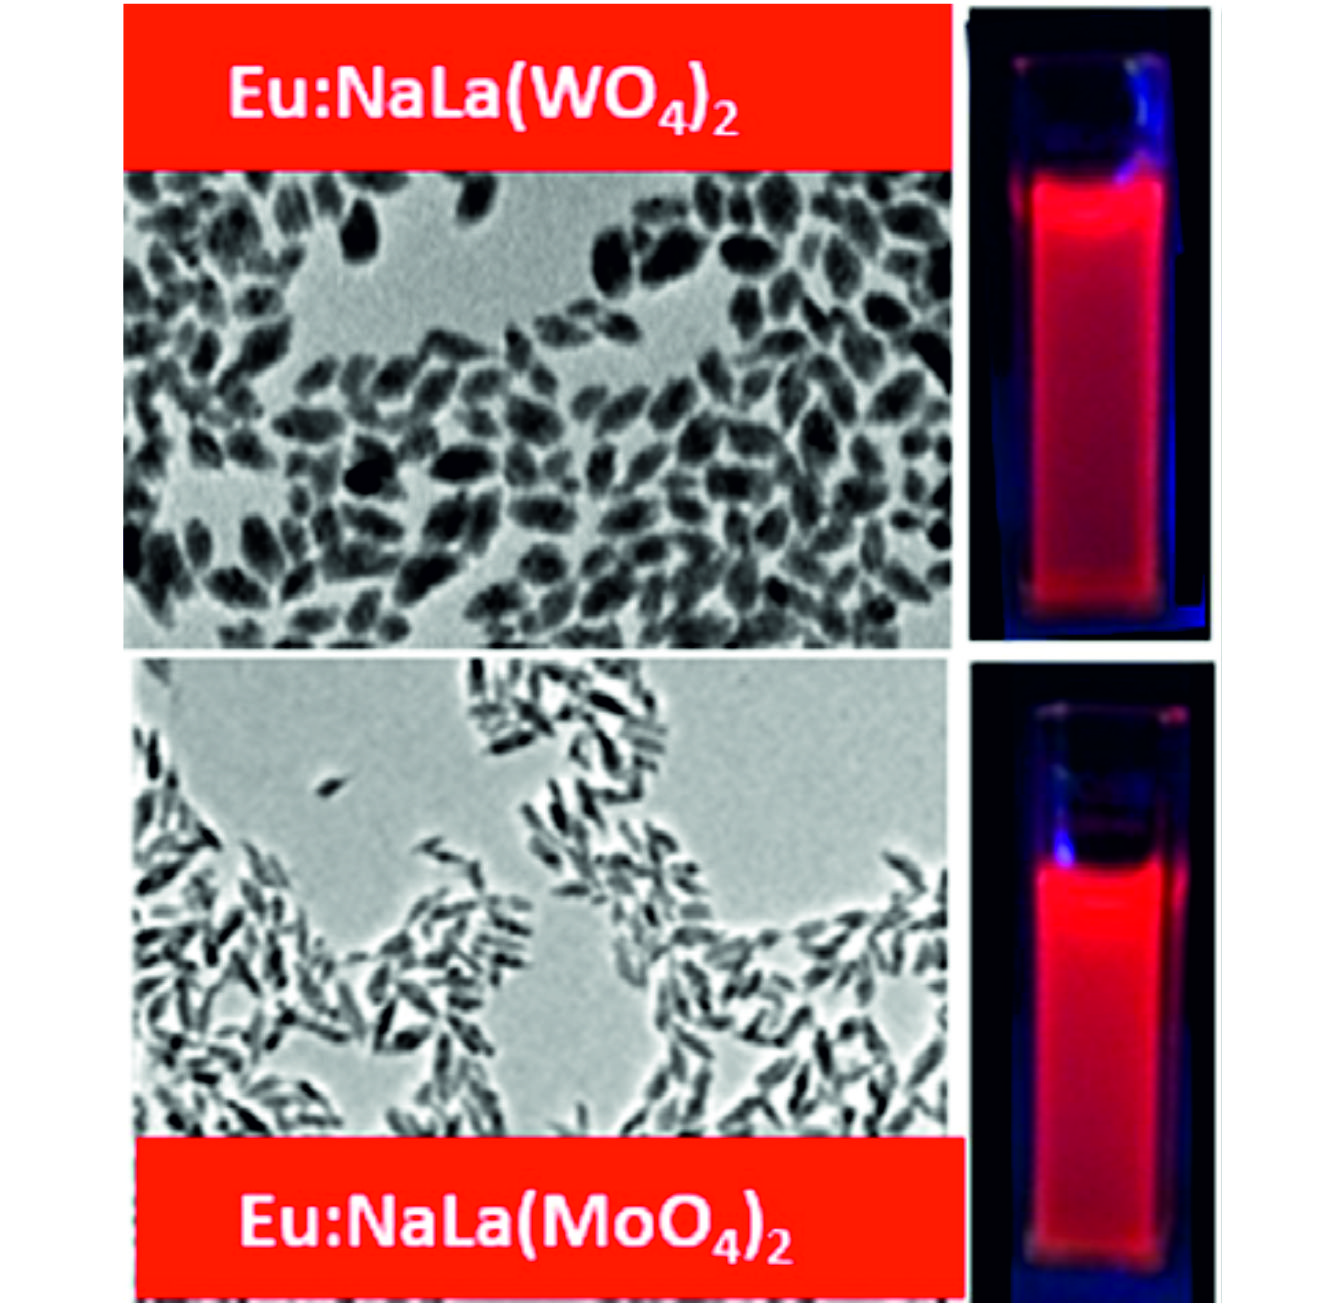 Synthesis, functionalization and properties of uniform europium-doped probes for bioimaging